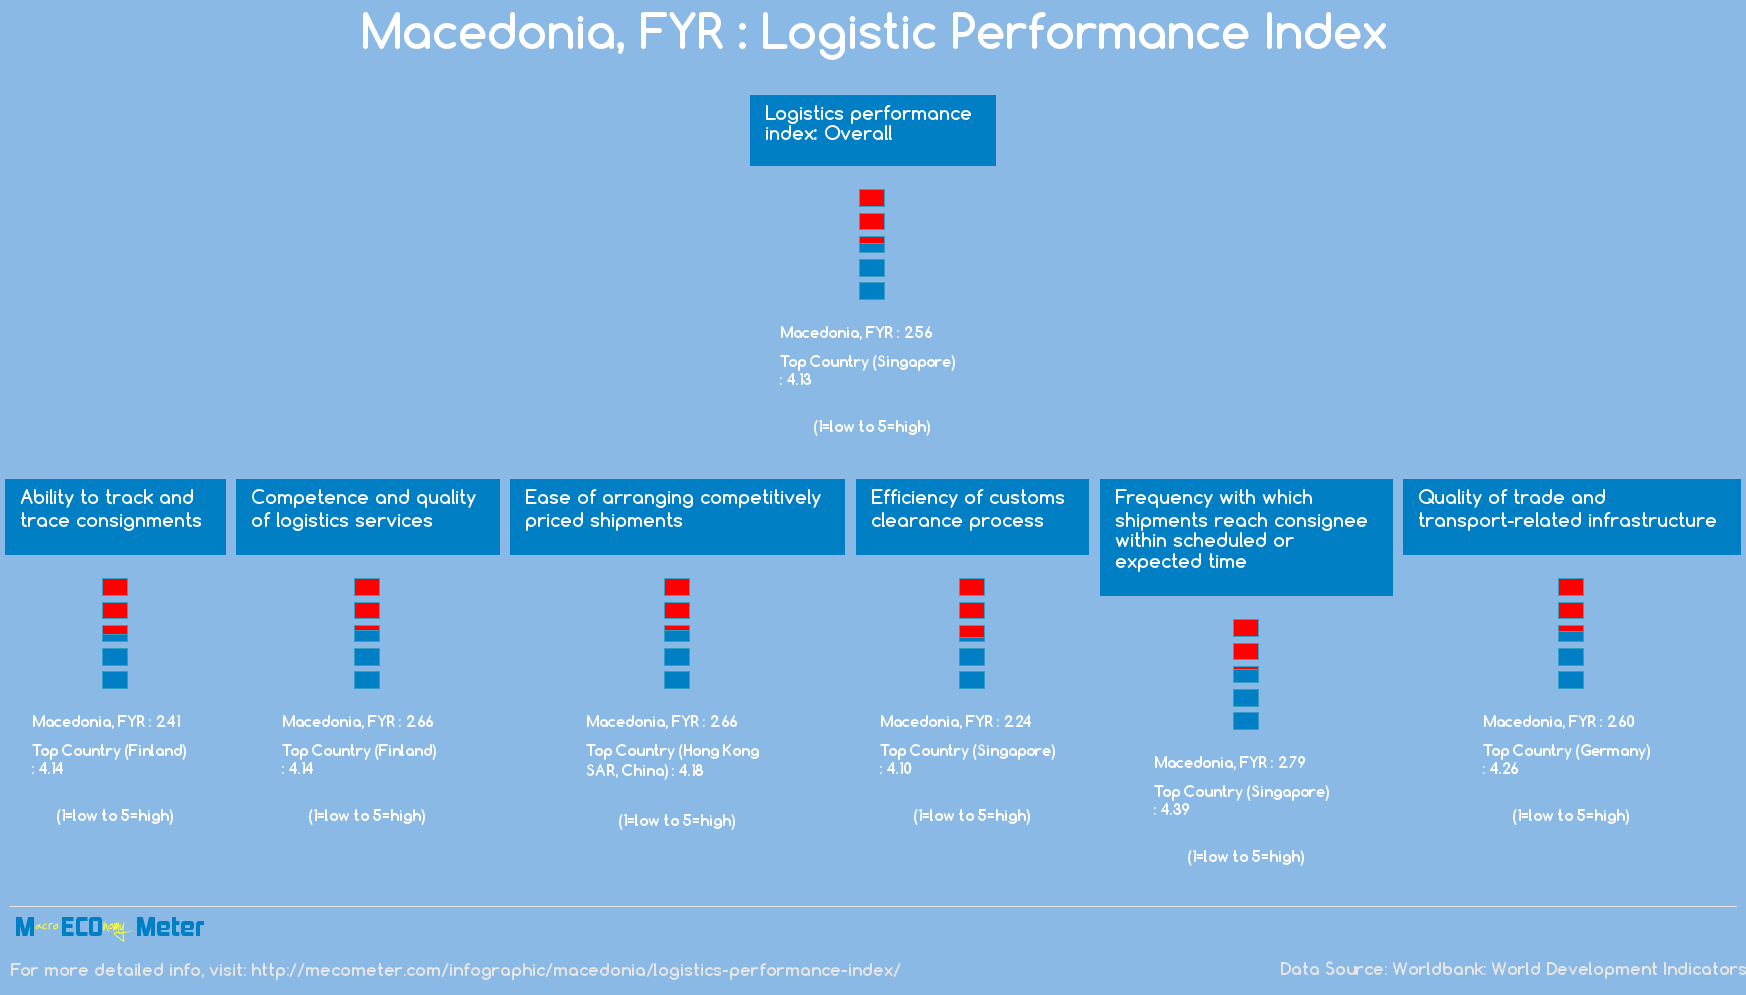 Macedonia : Logistic Performance Index